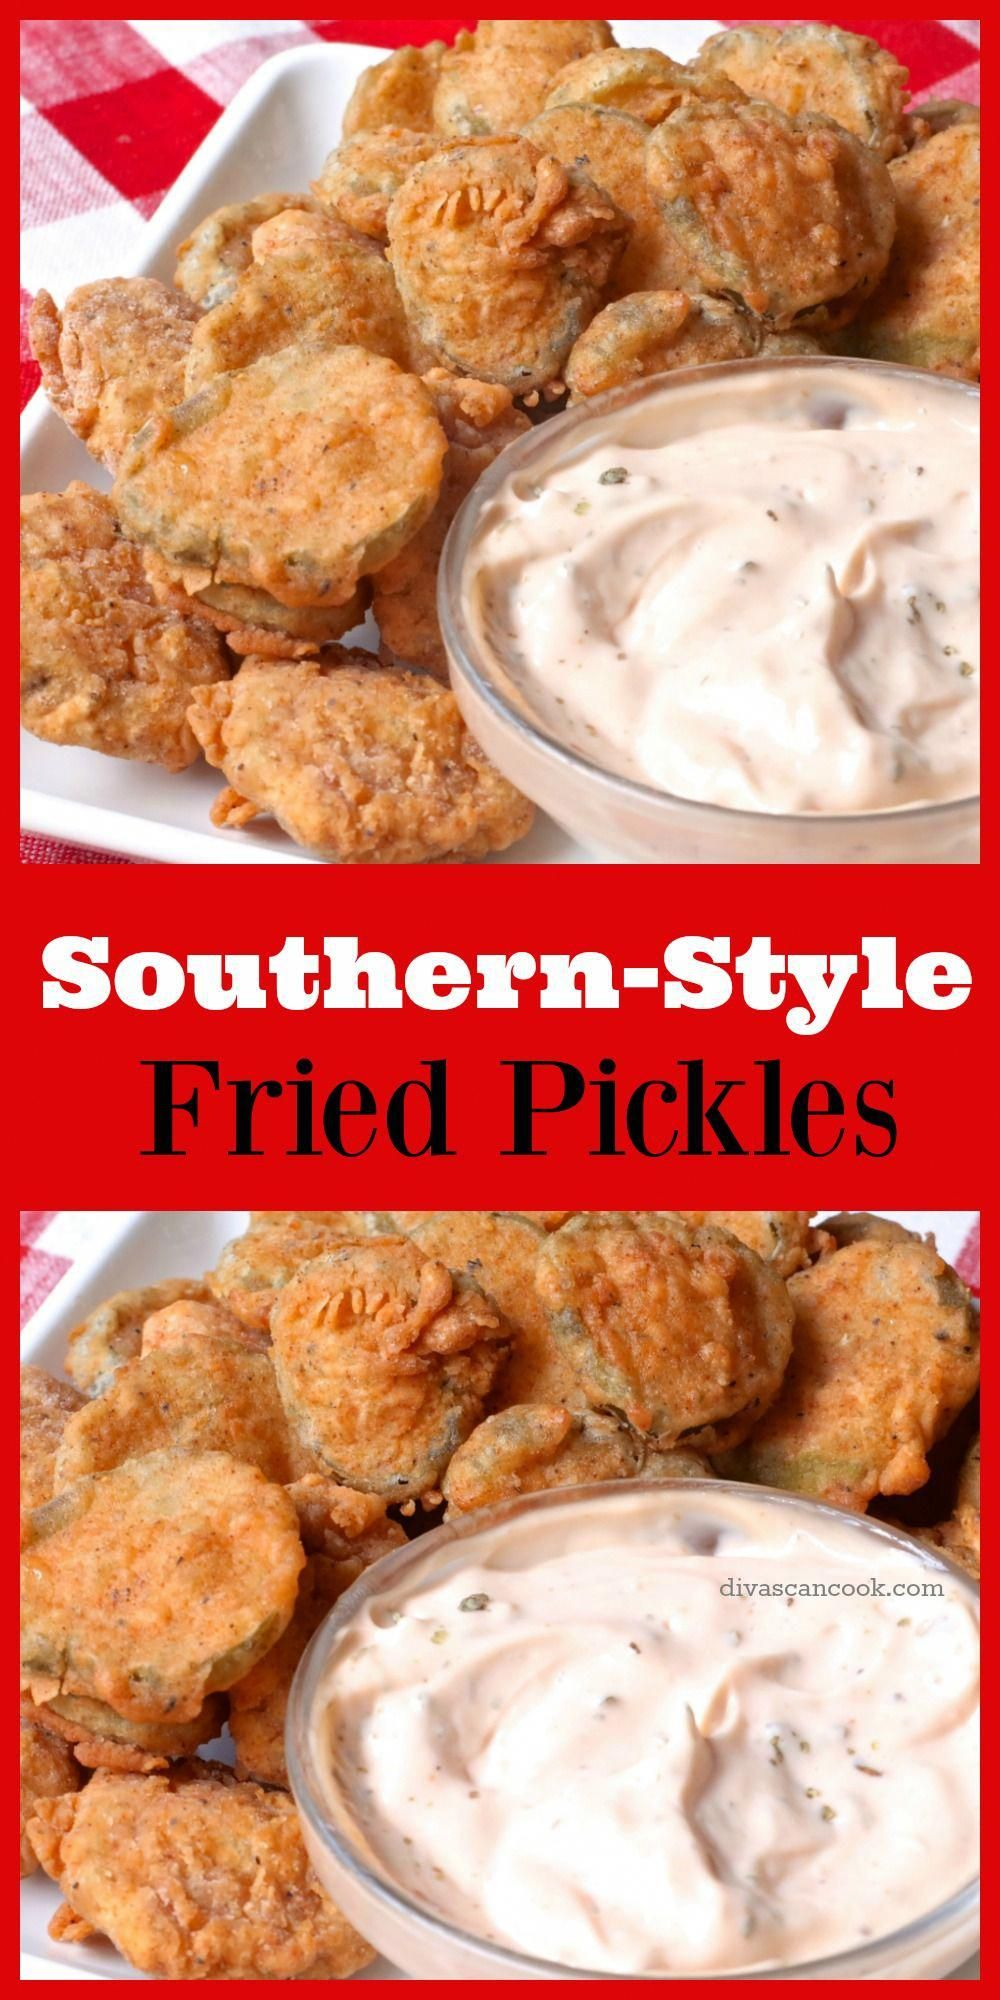 Southern Fried Pickles Recipe Fried pickles, Food